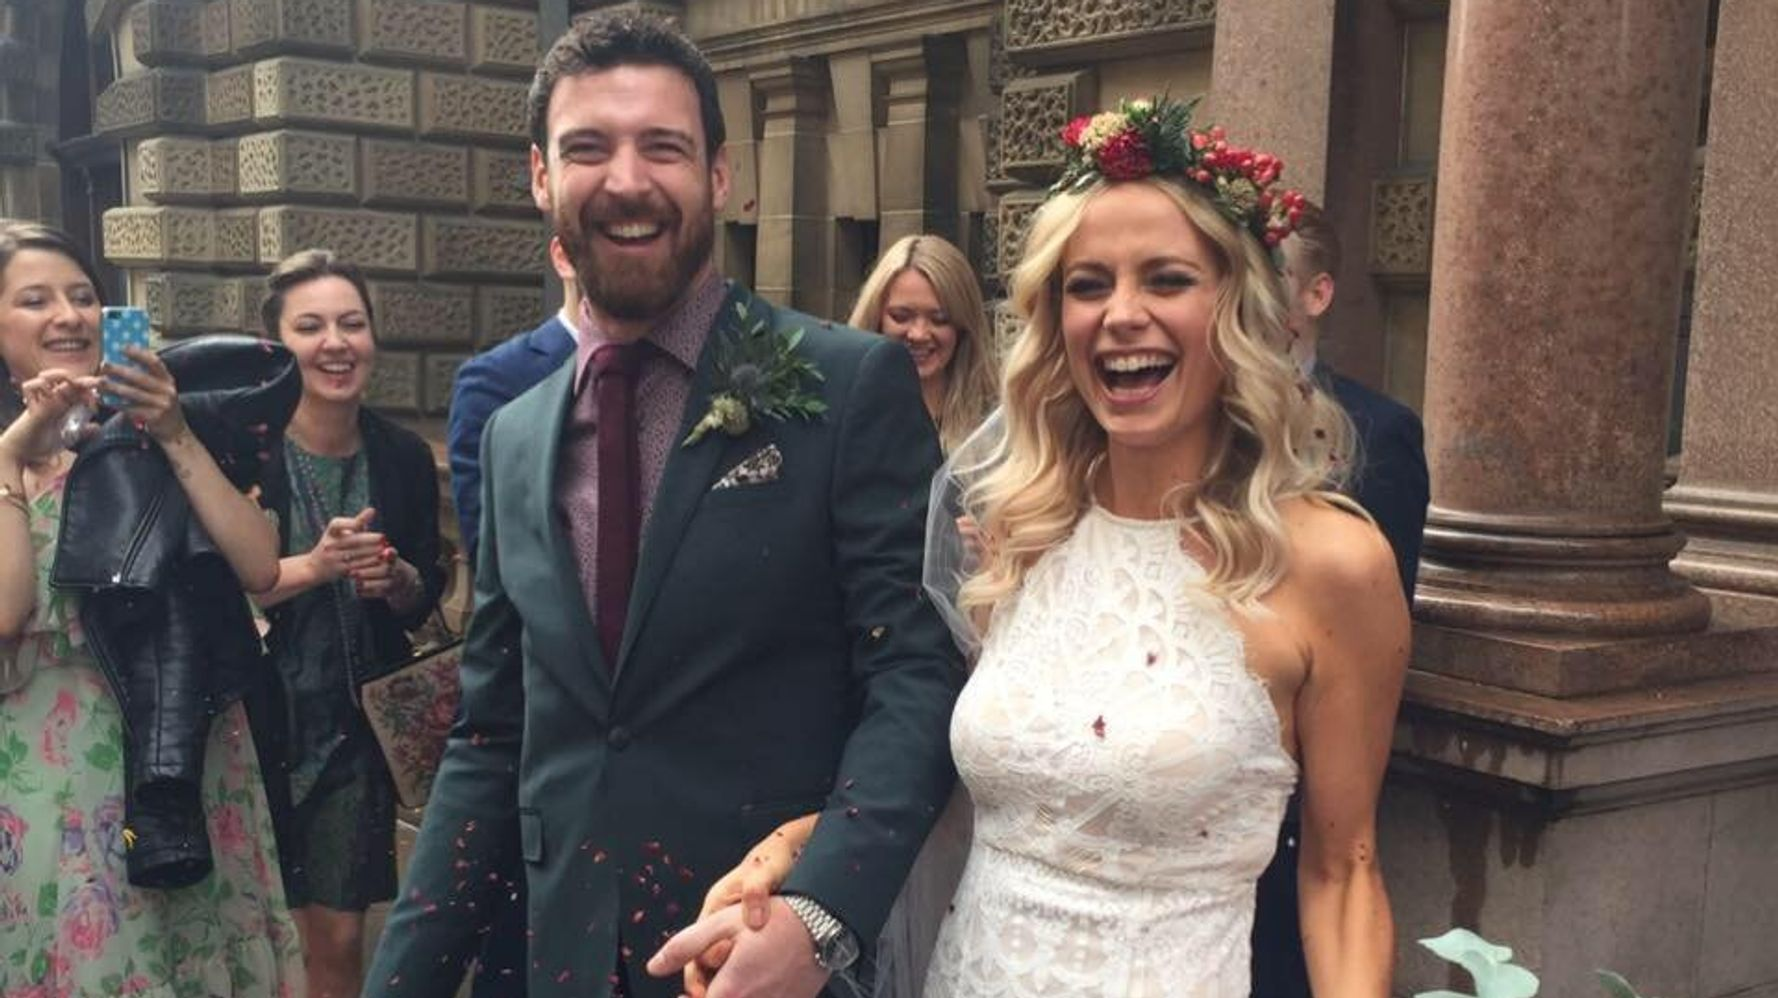 'Our Wedding Cost Under £5K' – Meet The Thrifty Couples Who Got Married For Cheap